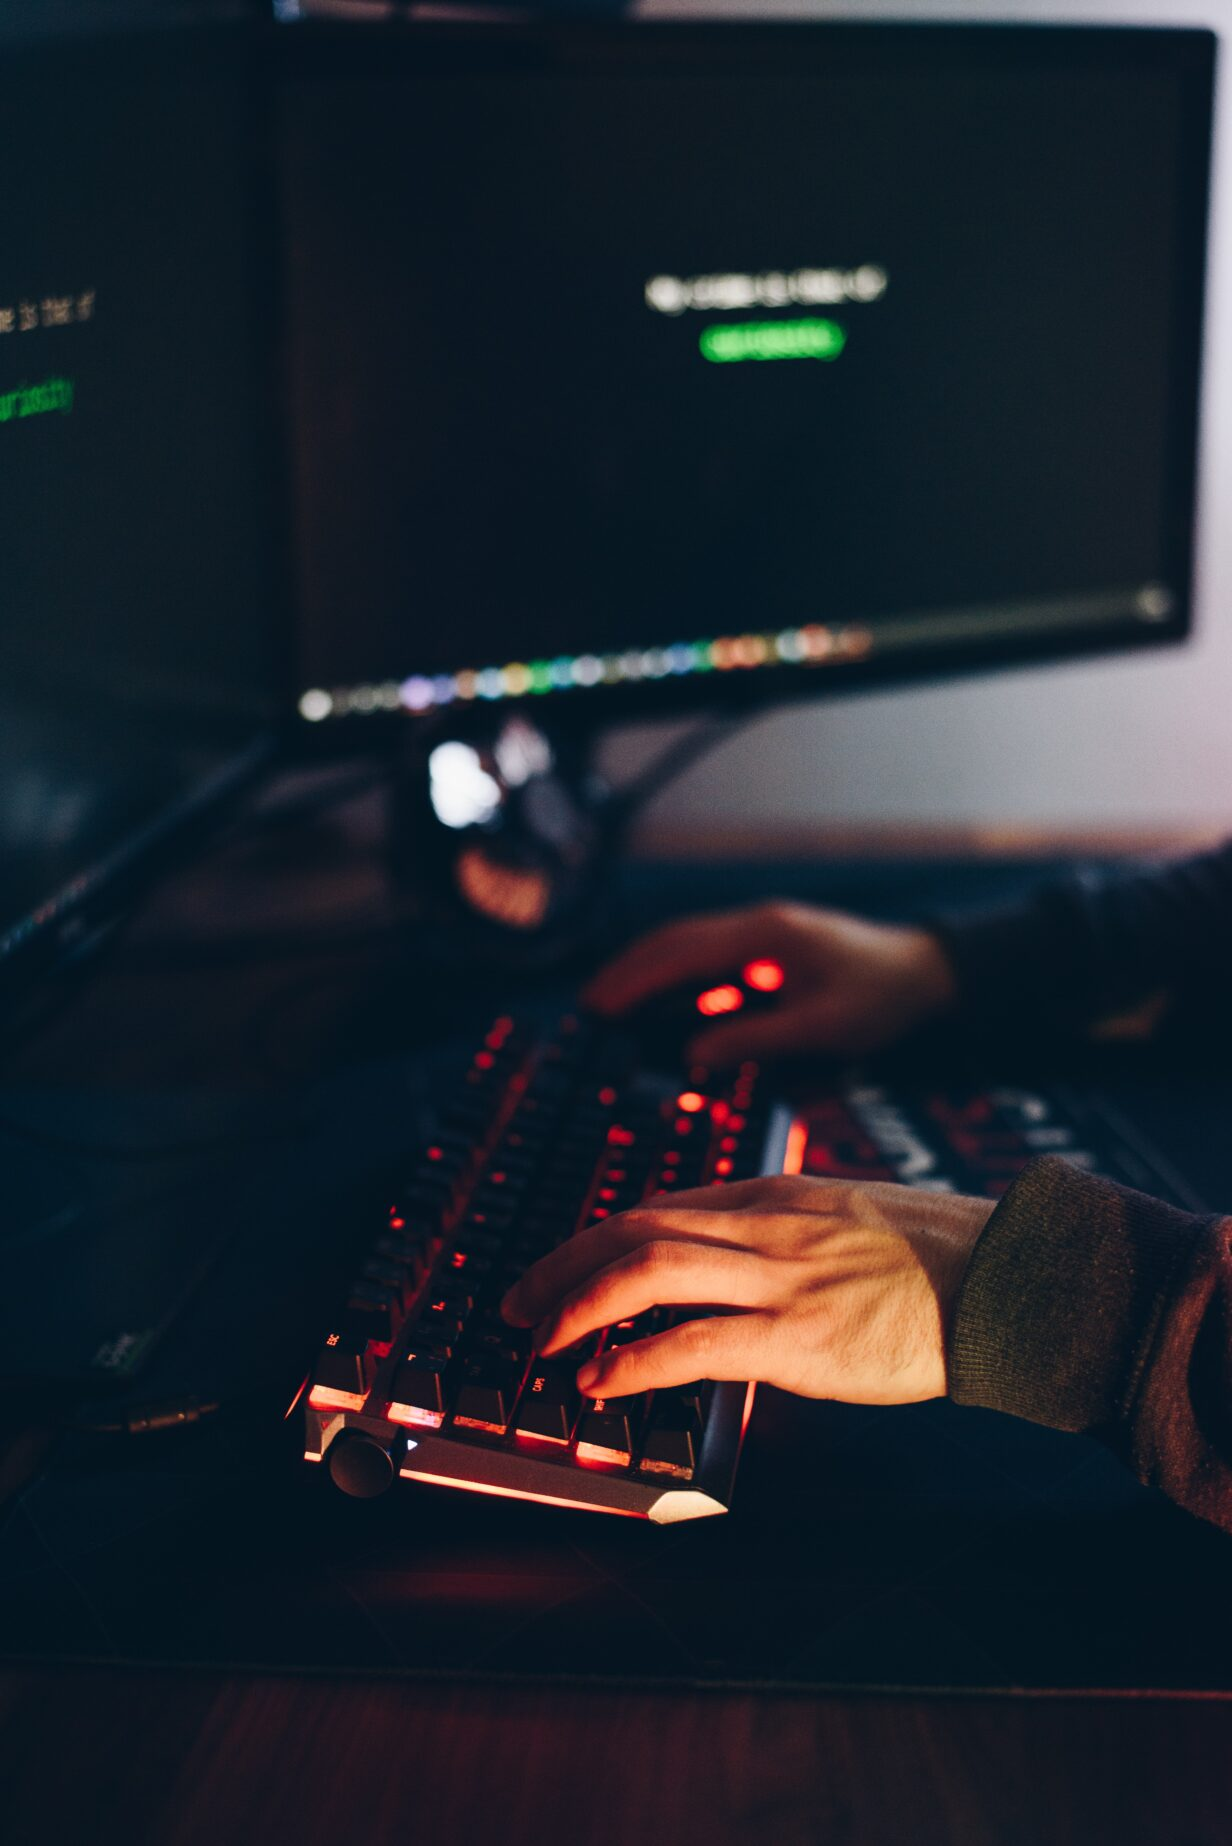 Picture of hands on a computer keyboard with a dark background